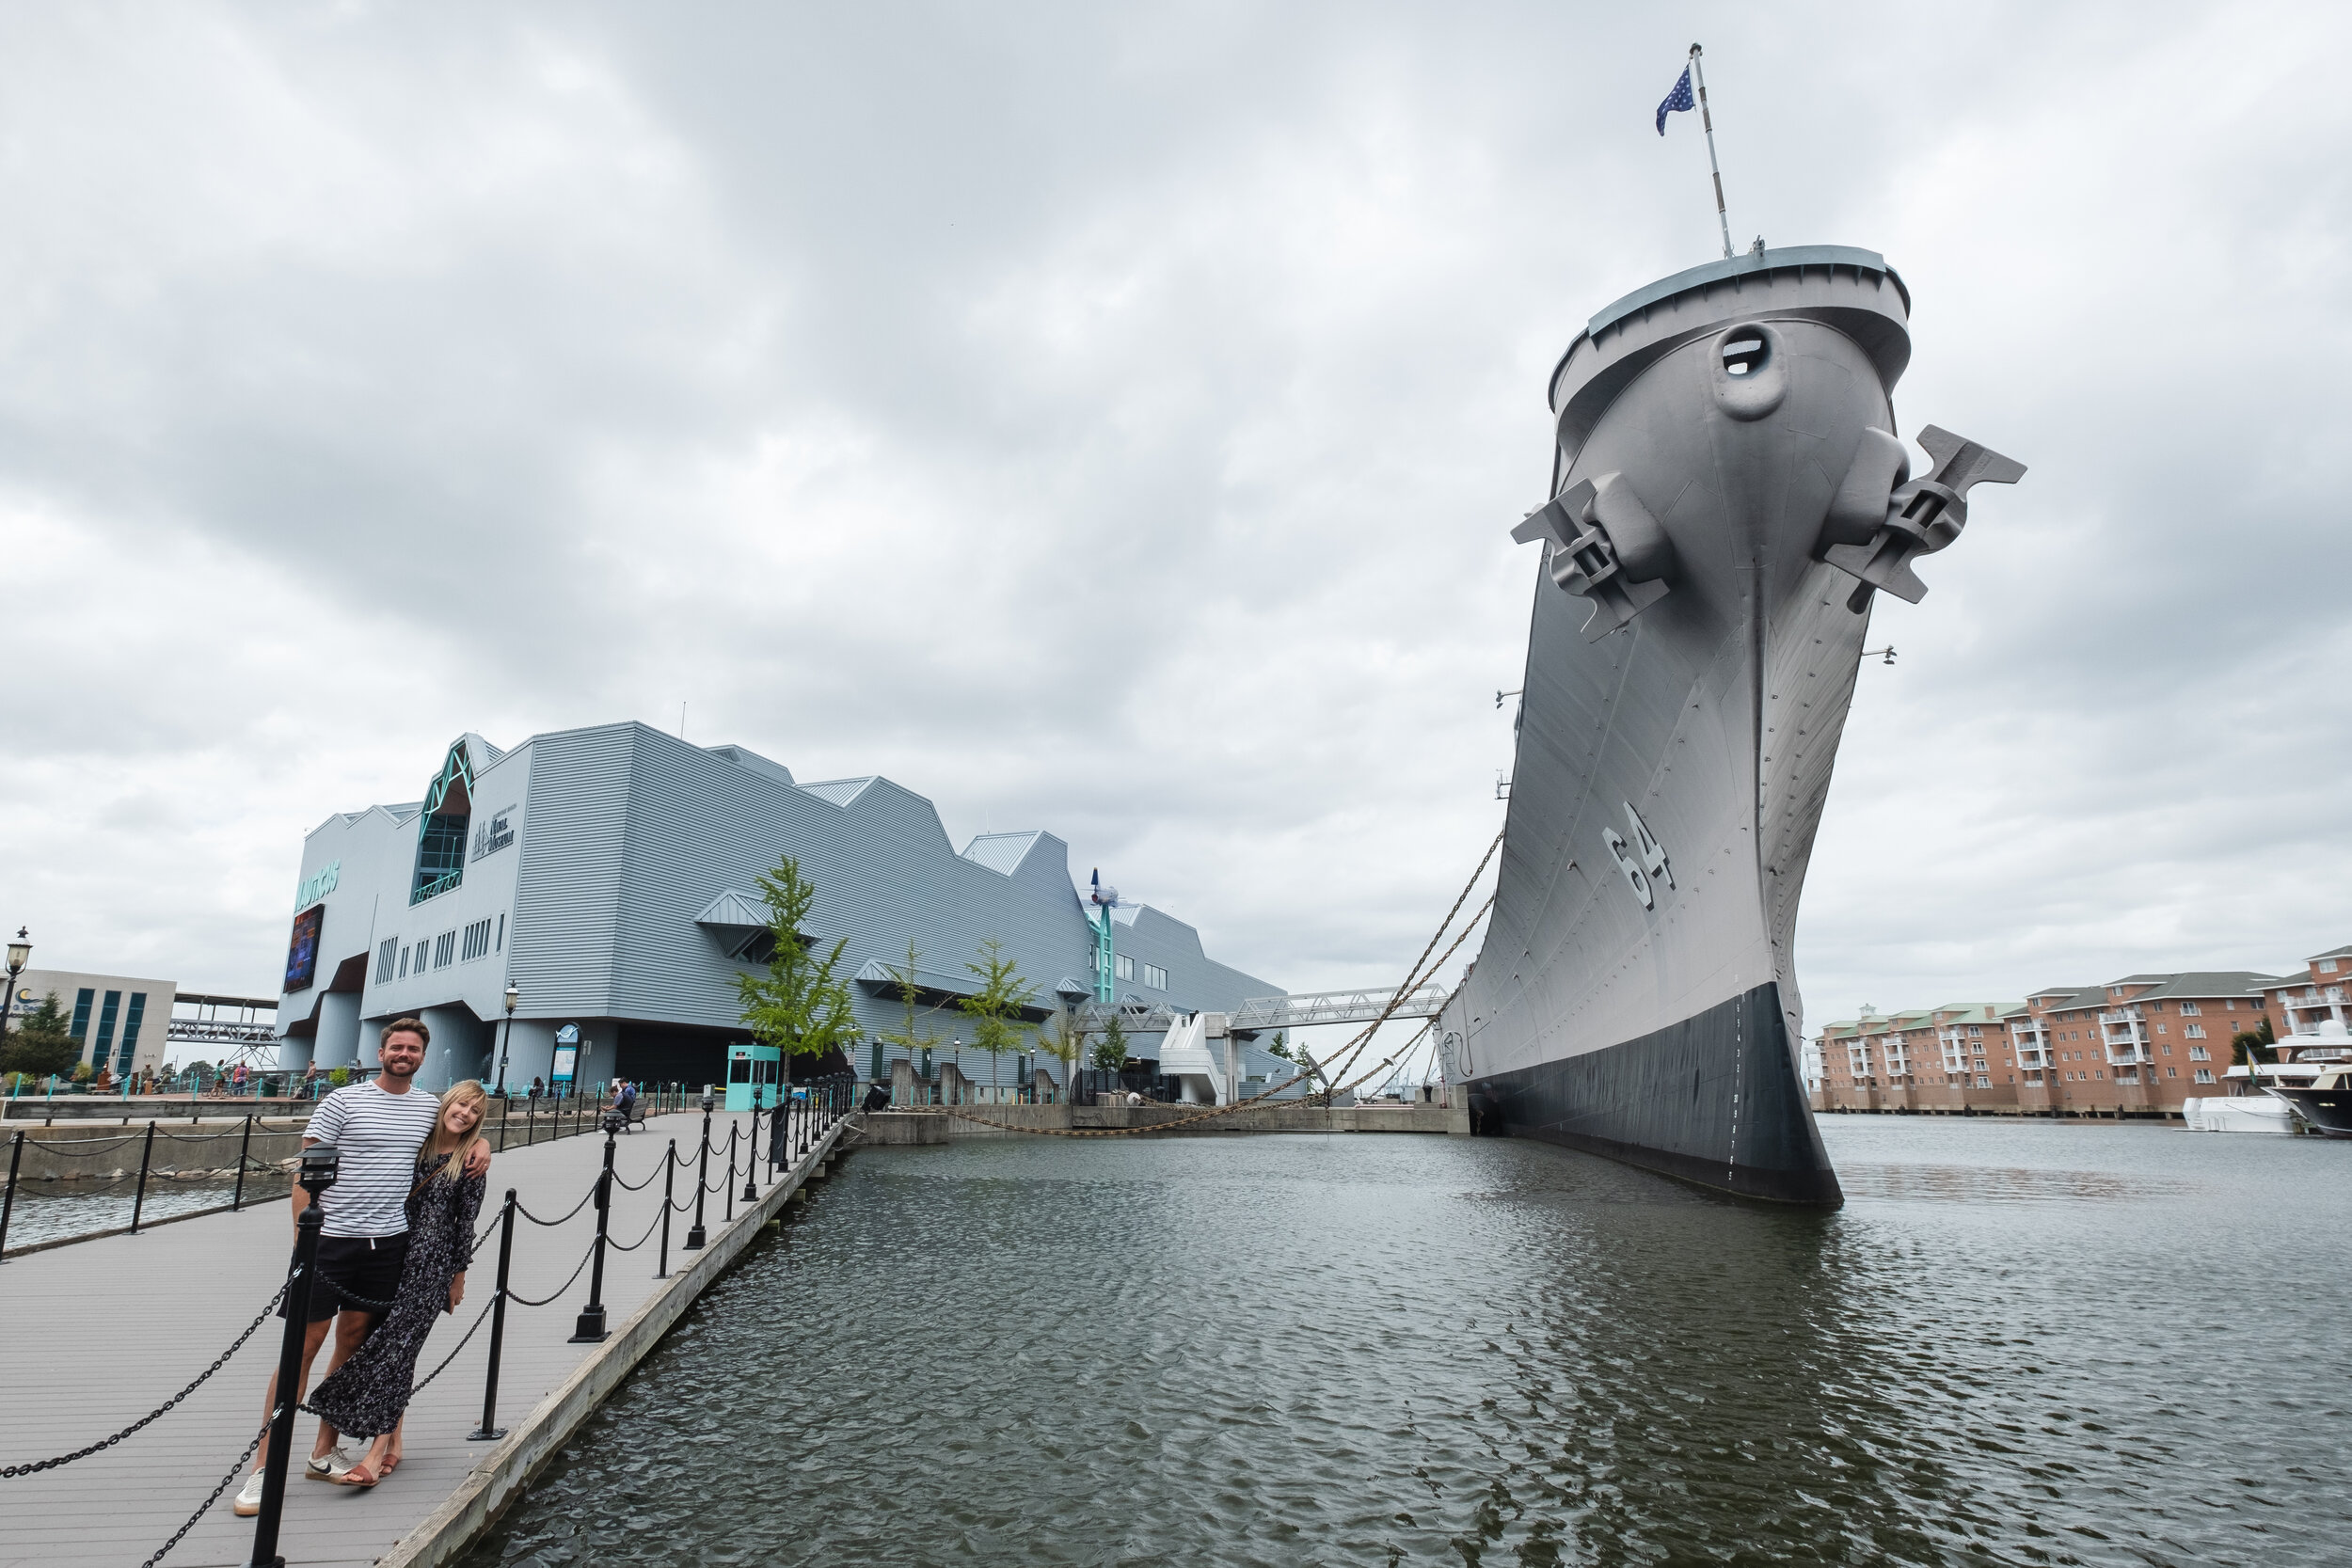 We could have spent all day at the Nauticus and Battleship Wisconsin.